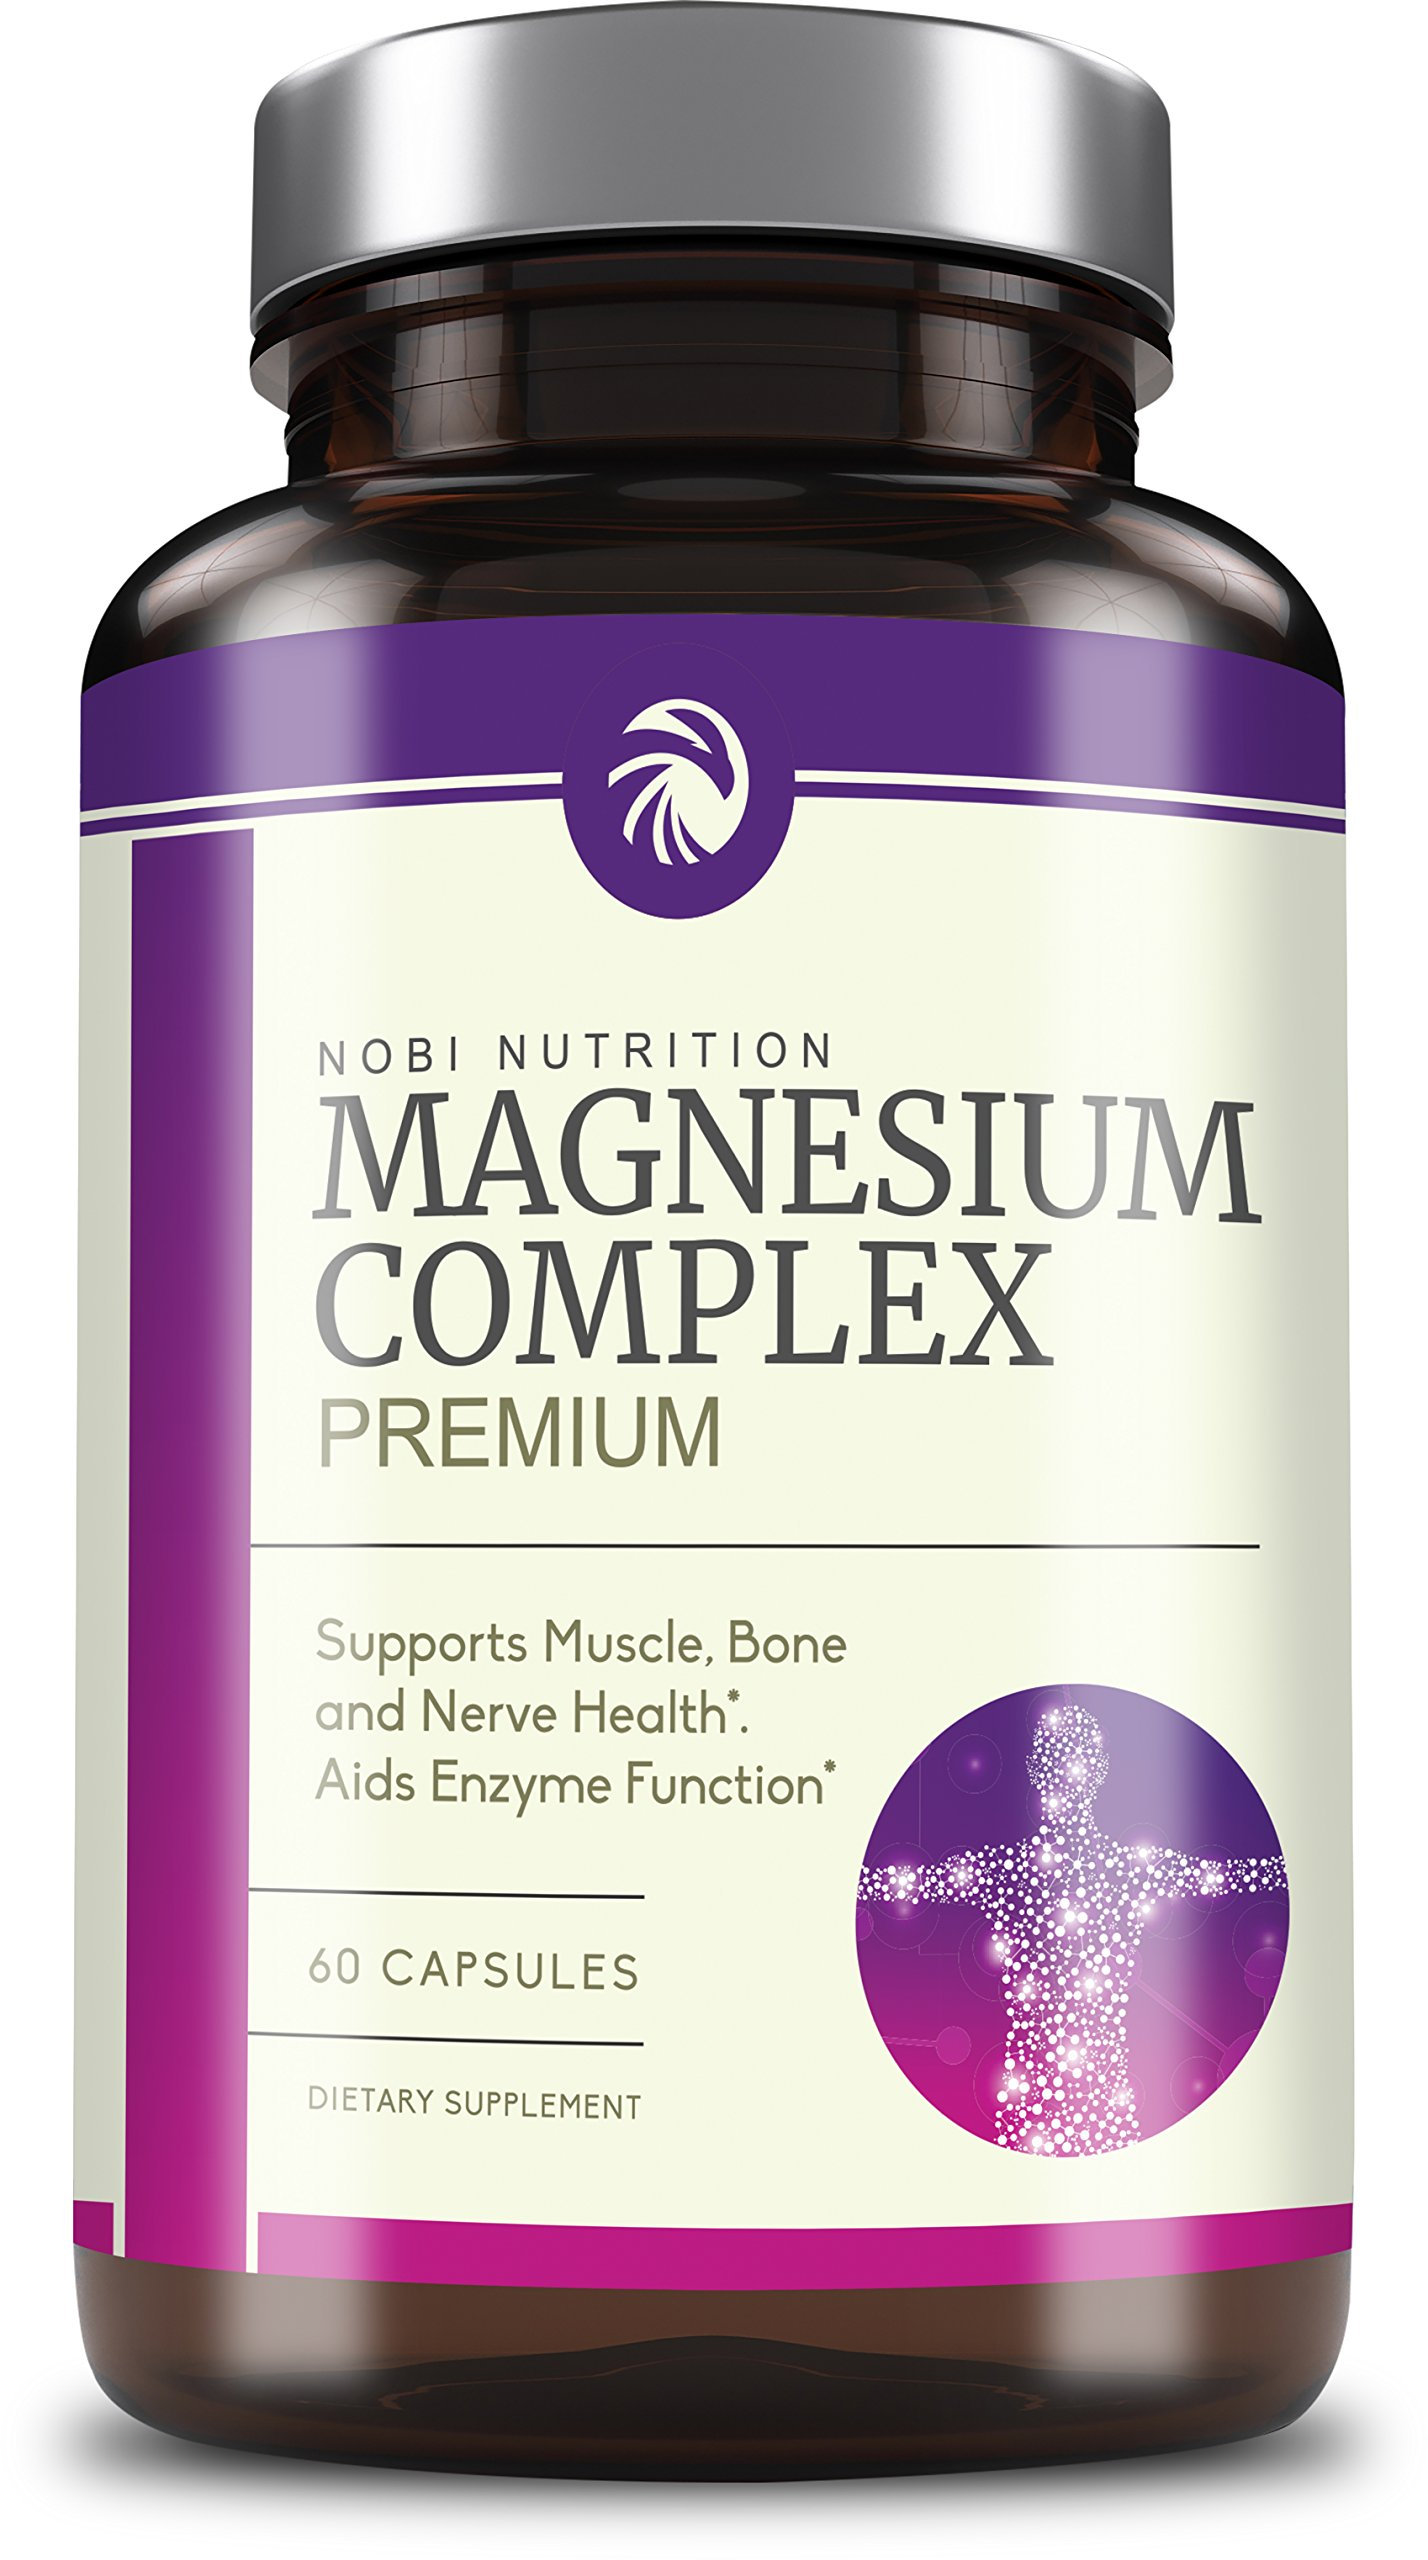 Nobi Nutrition High Absorption Magnesium Complex - Premium Mag Supplement for Sleep, Leg Cramps, Muscle Relaxation & Recovery - Formulated for Women & Men - Vegan, Pure, Non-GMO - 60 Veggie Capsules by Nobi Nutrition